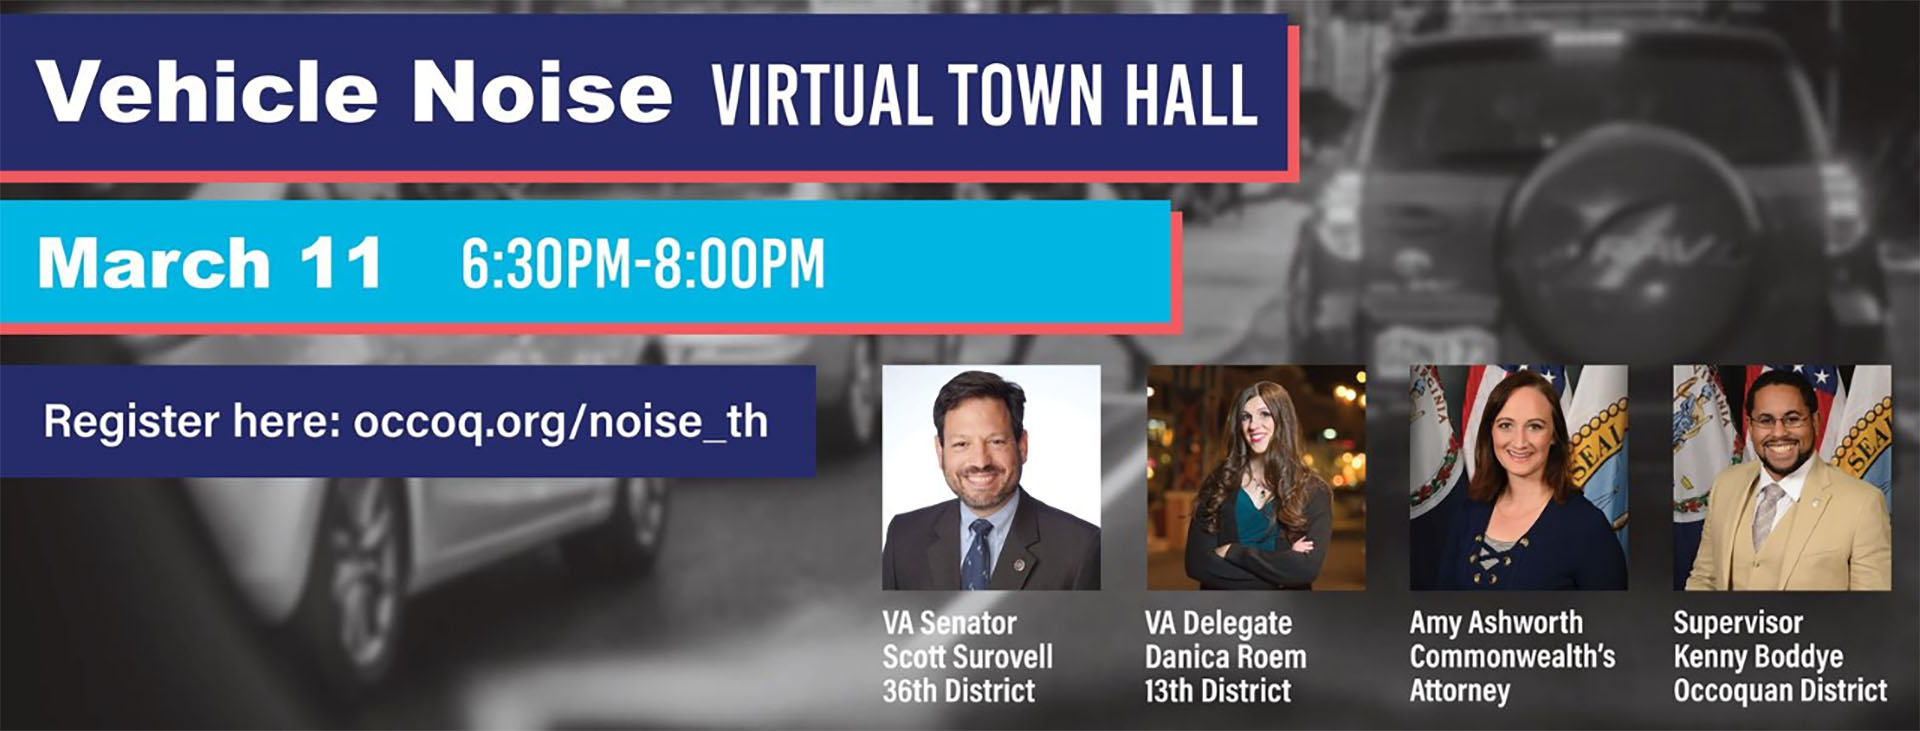 Vehicle noise to be discussed in virtual town hall